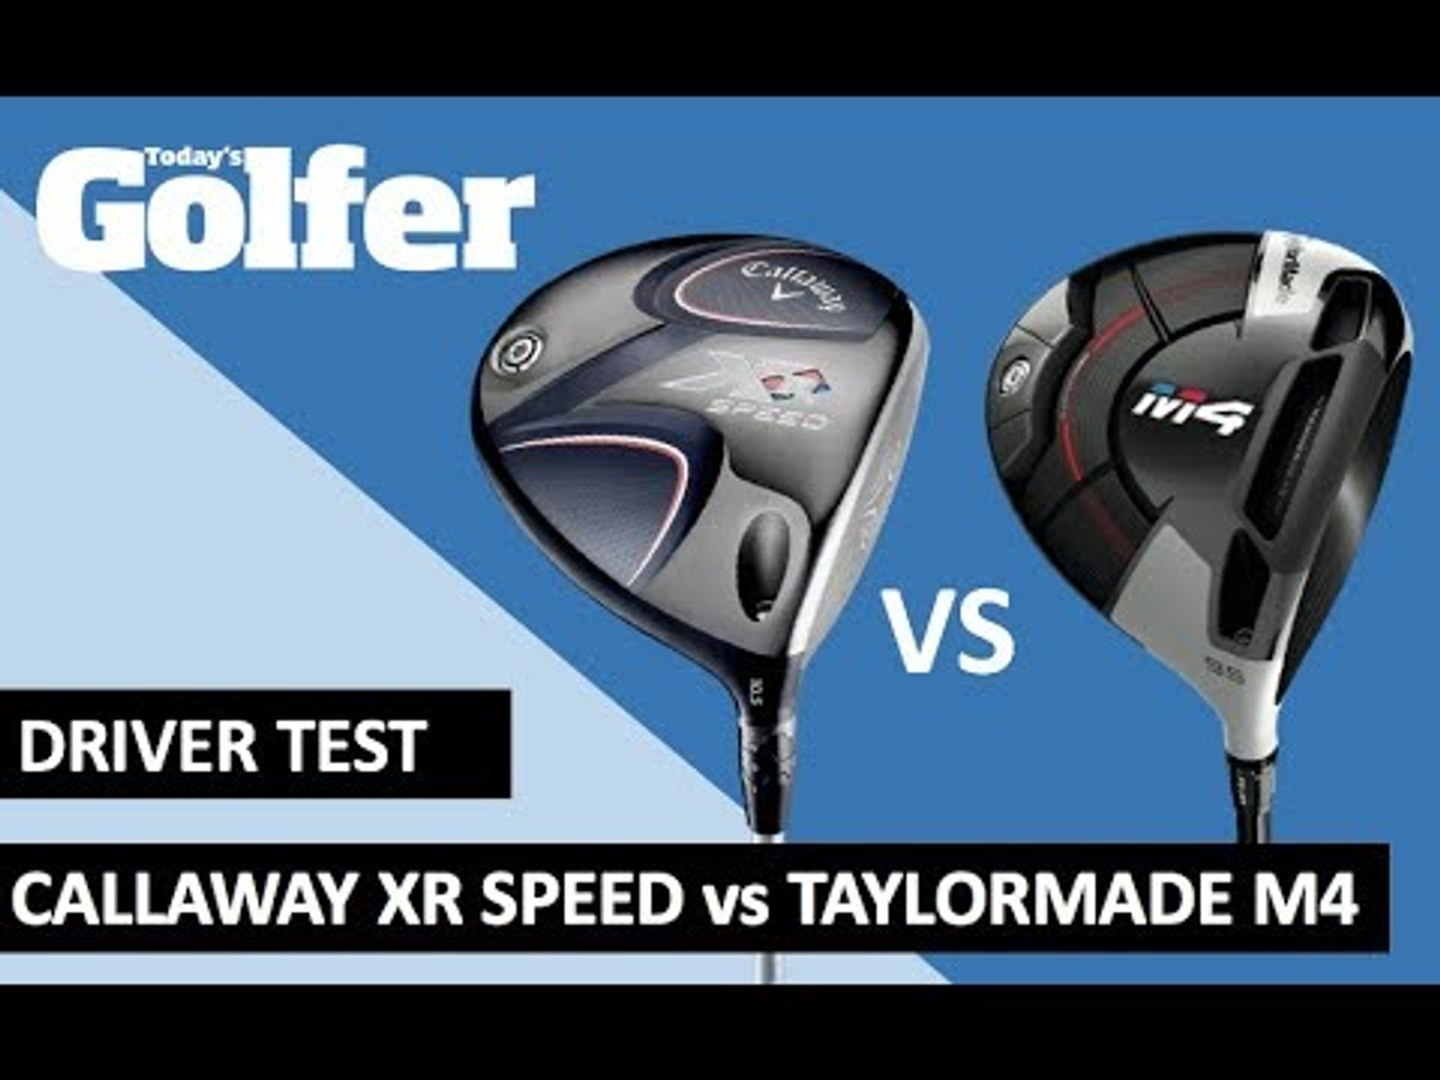 Review: Callaway XR Speed vs TaylorMade M4 driver